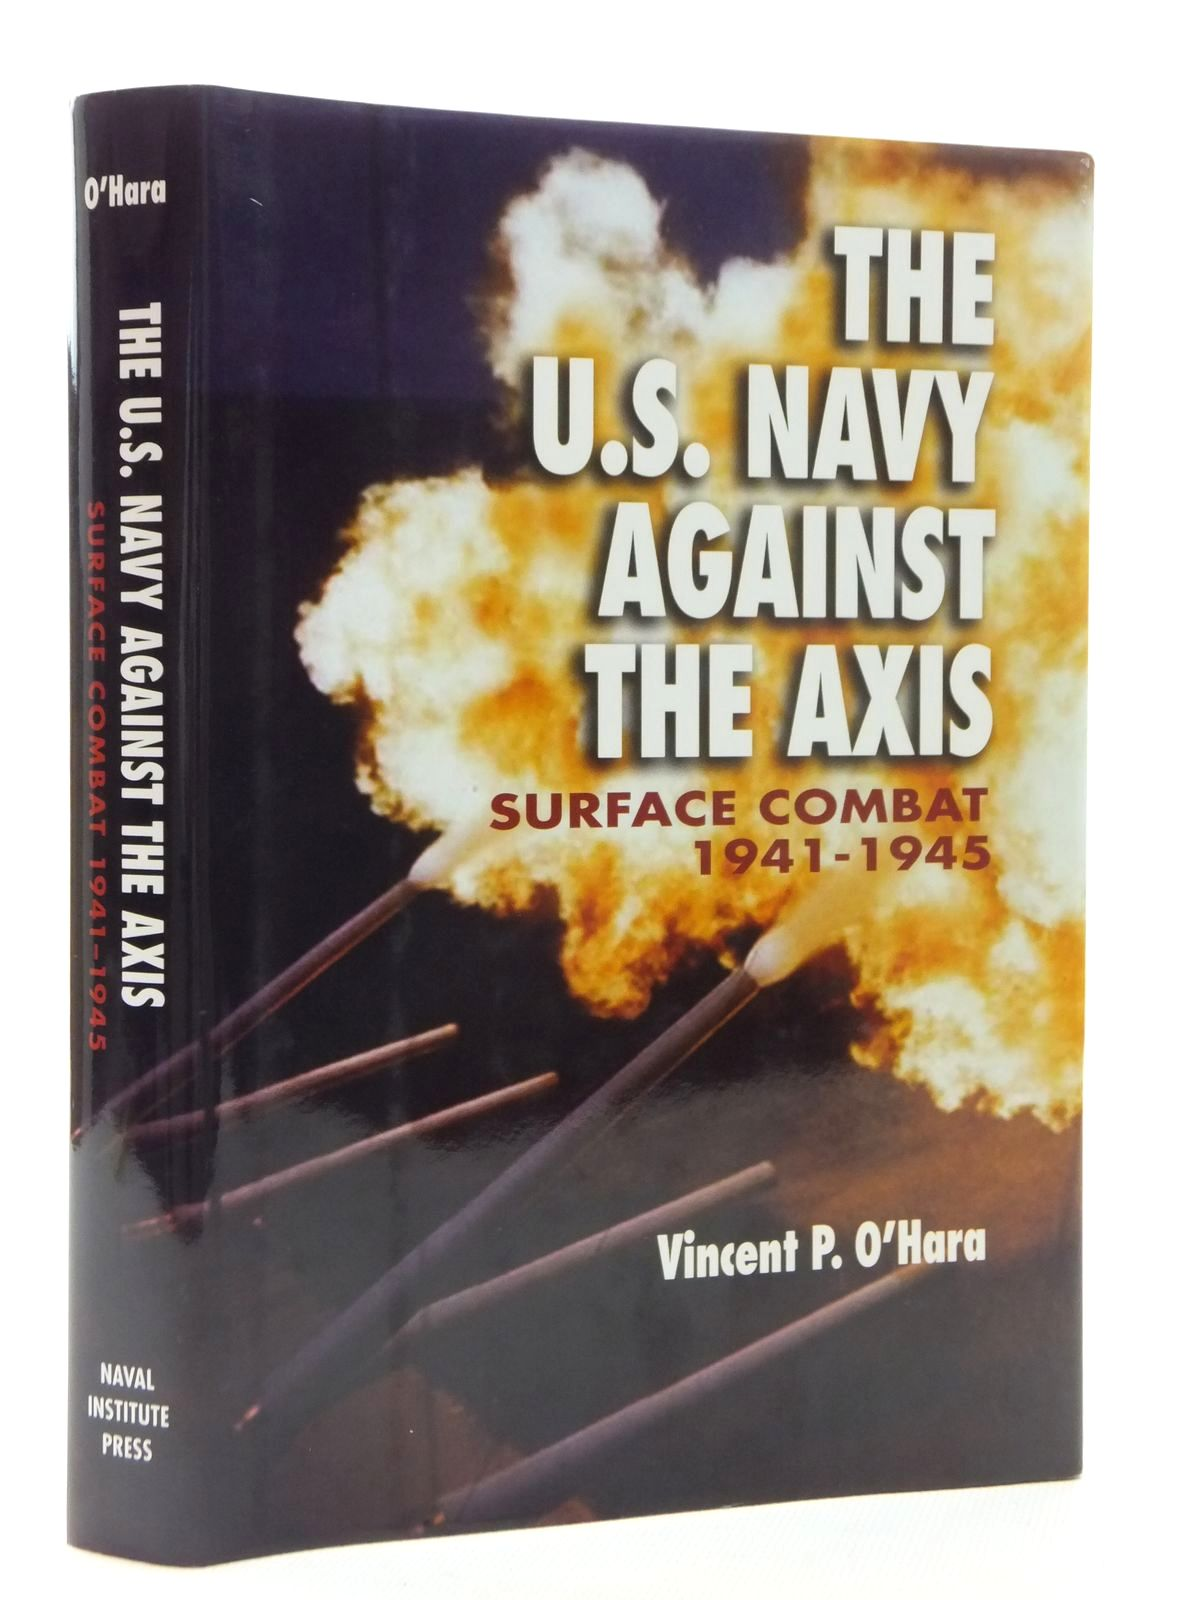 Photo of THE U.S. NAVY AGAINST THE AXIS: SURFACE COMBAT 1941-1945 written by O'Hara, Vincent P. published by Naval Institute Press (STOCK CODE: 1815163)  for sale by Stella & Rose's Books